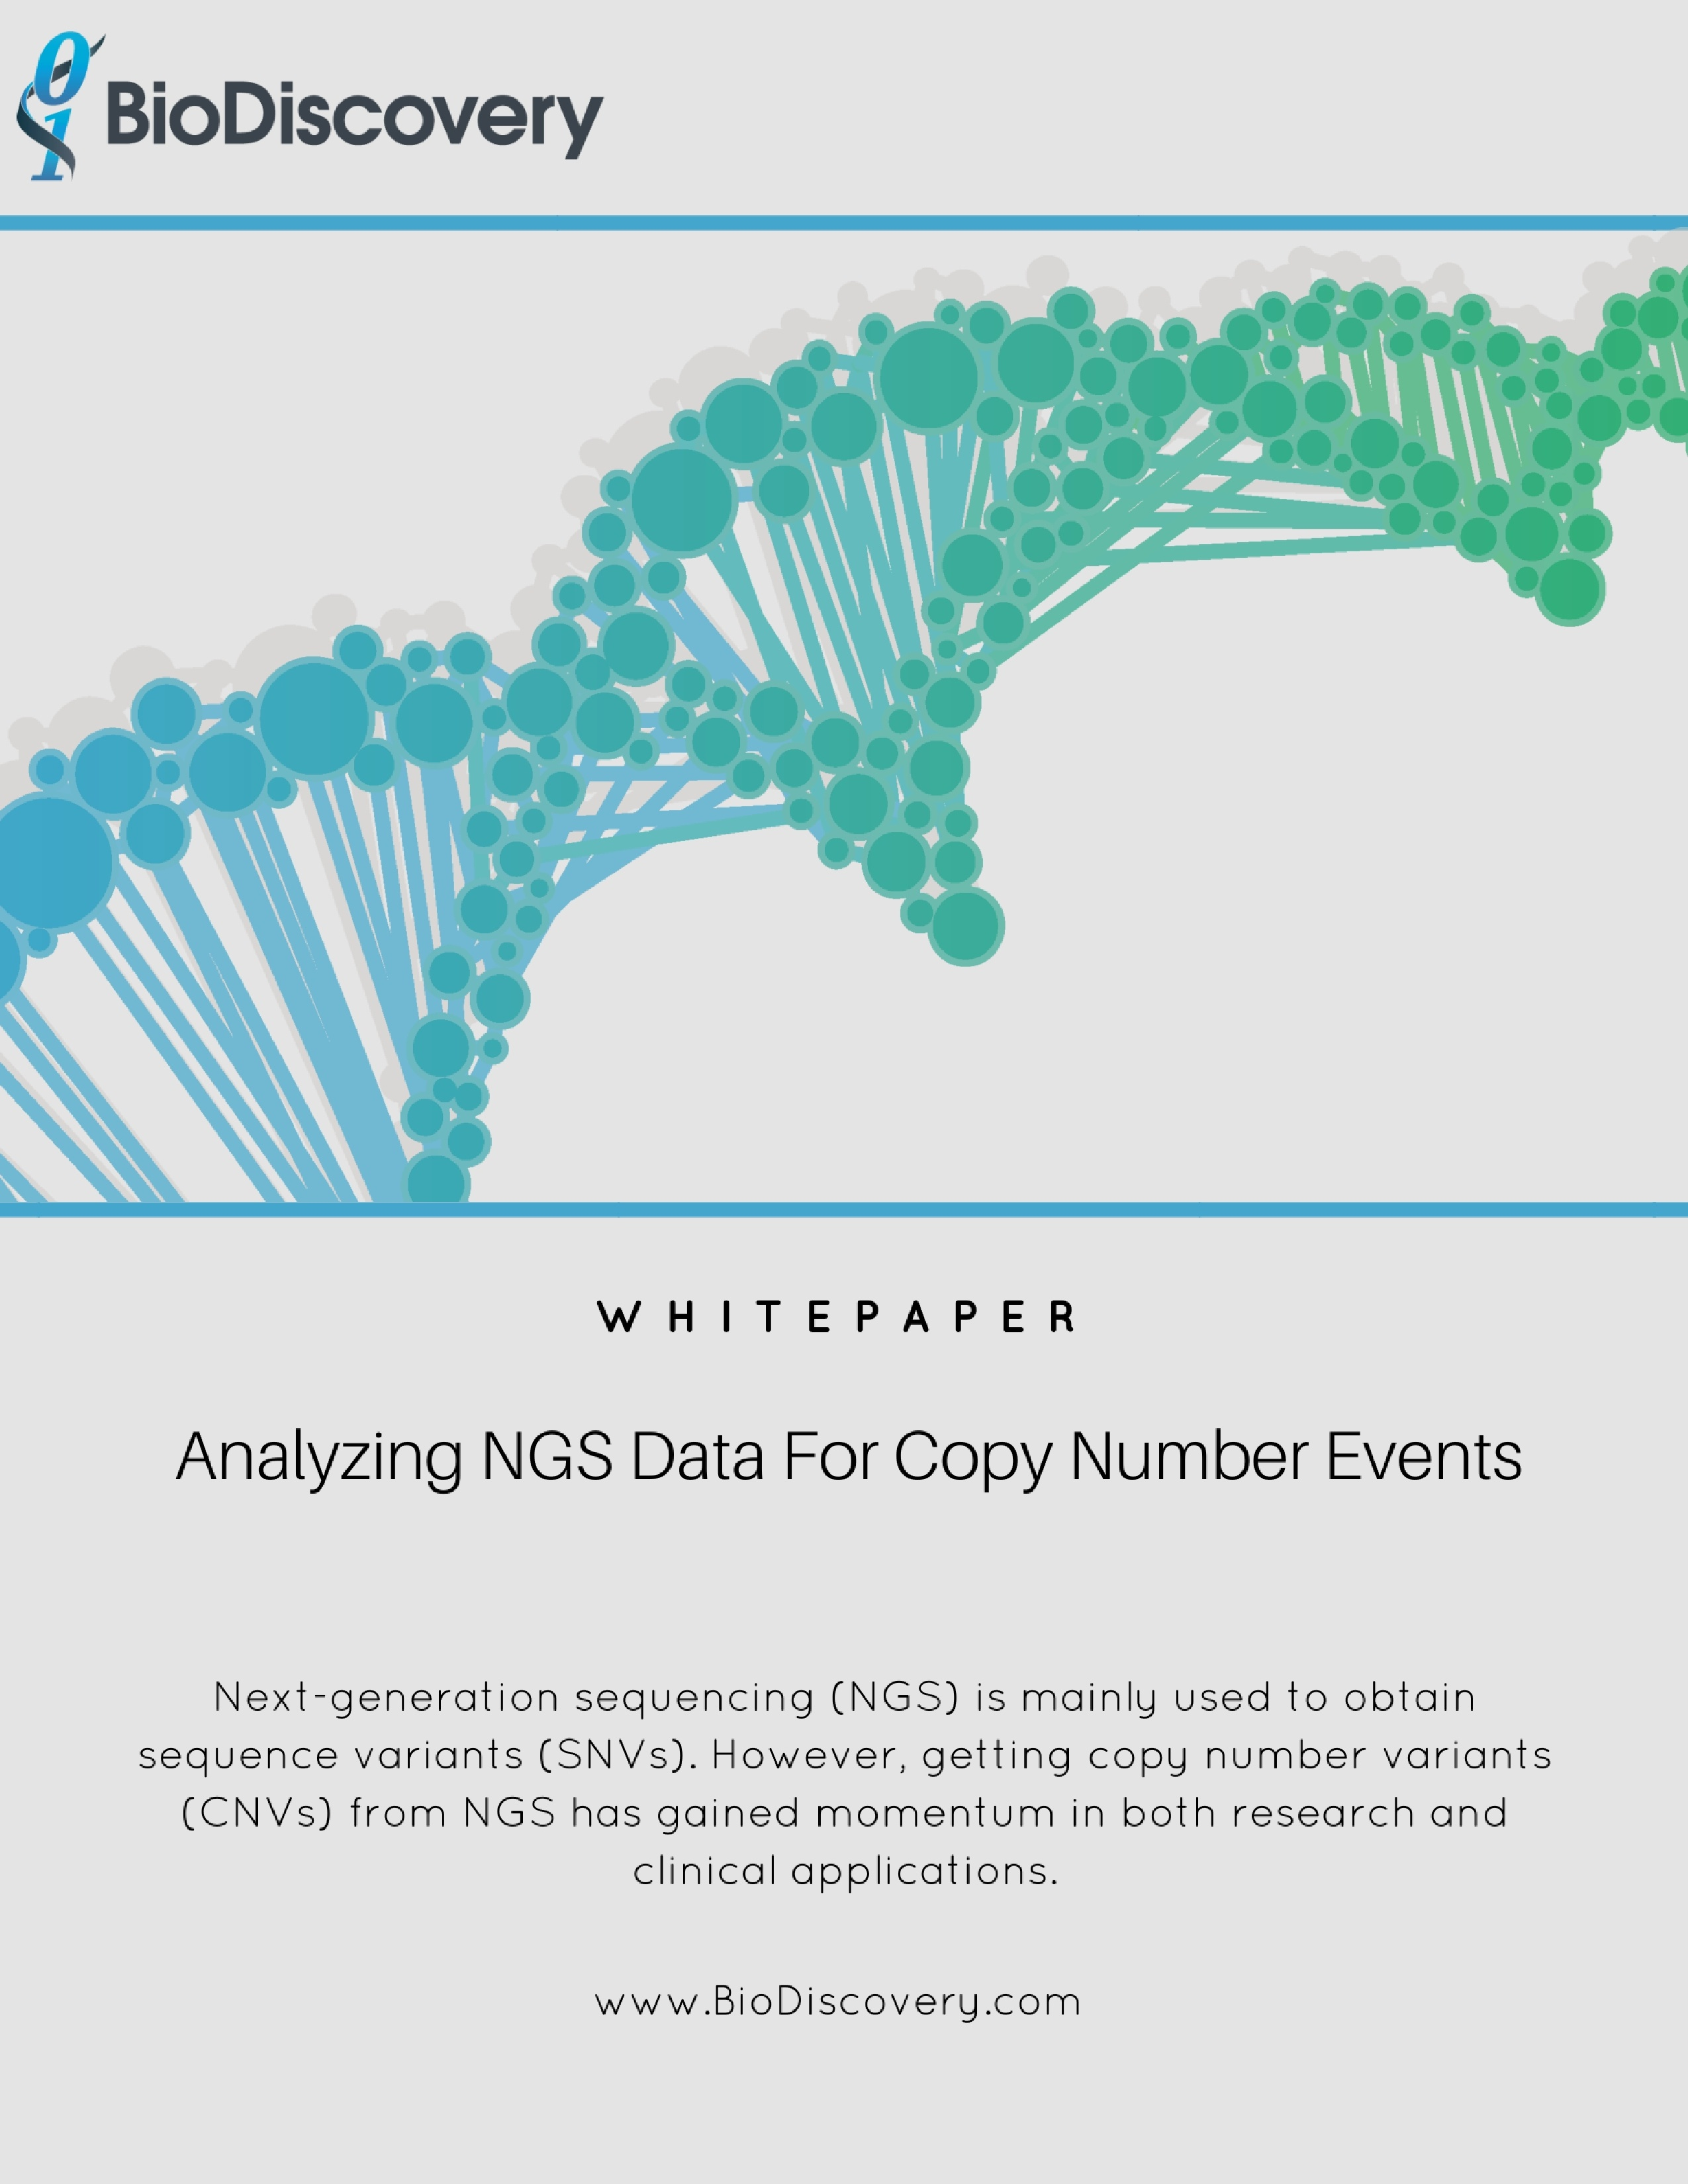 Analyzing NGS Data For Copy Number Events_Whitepaper Cover Page